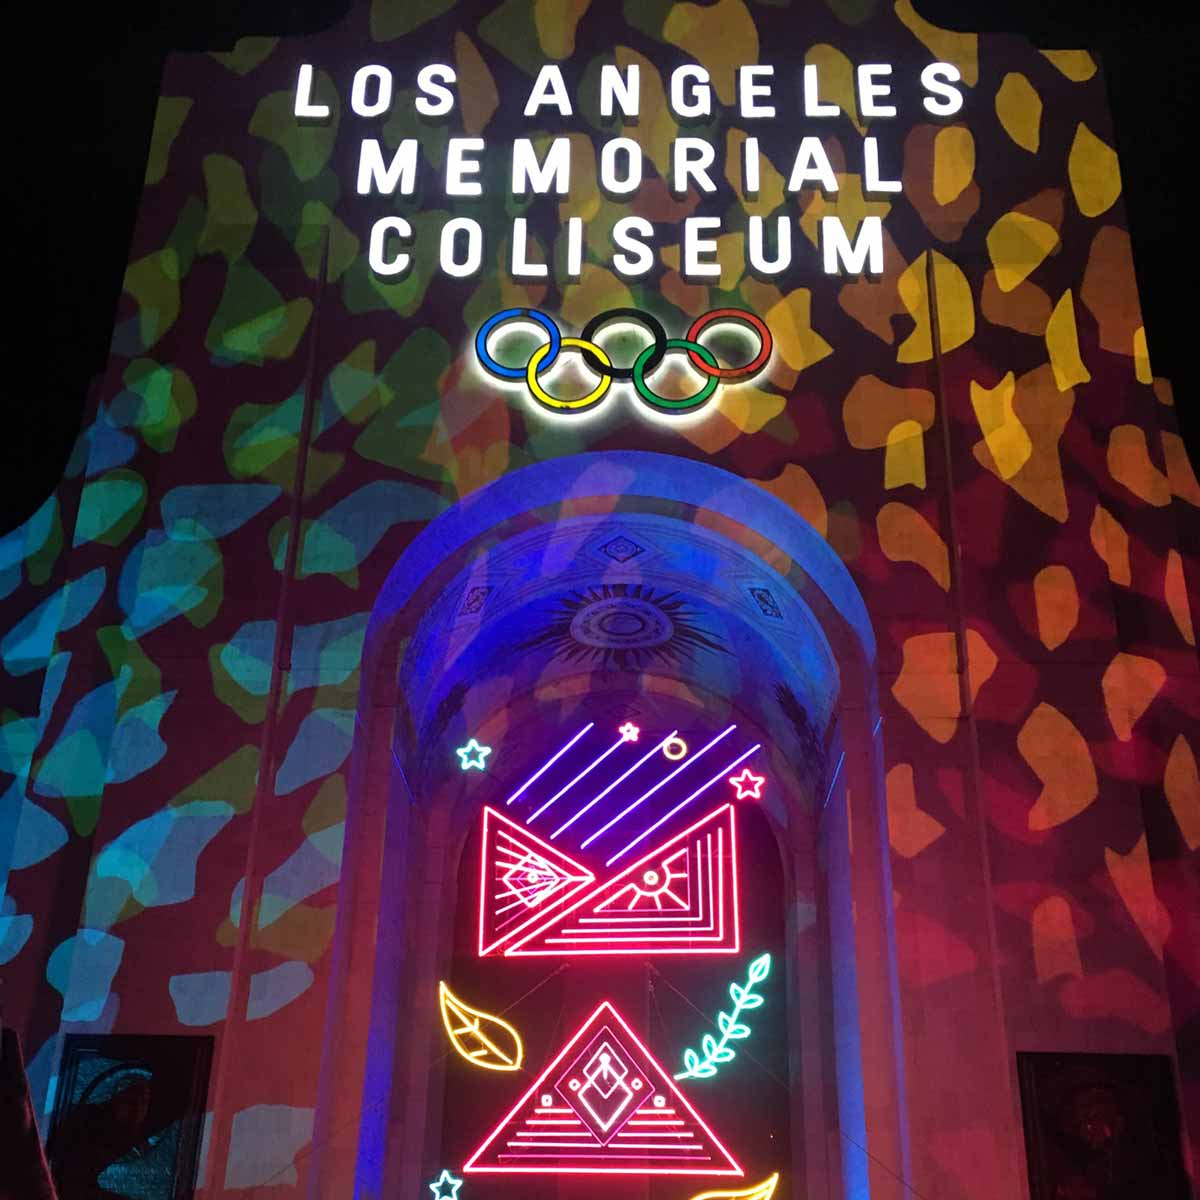 A photo of the los angeles memorial coliseum for the Adobe Max Conference